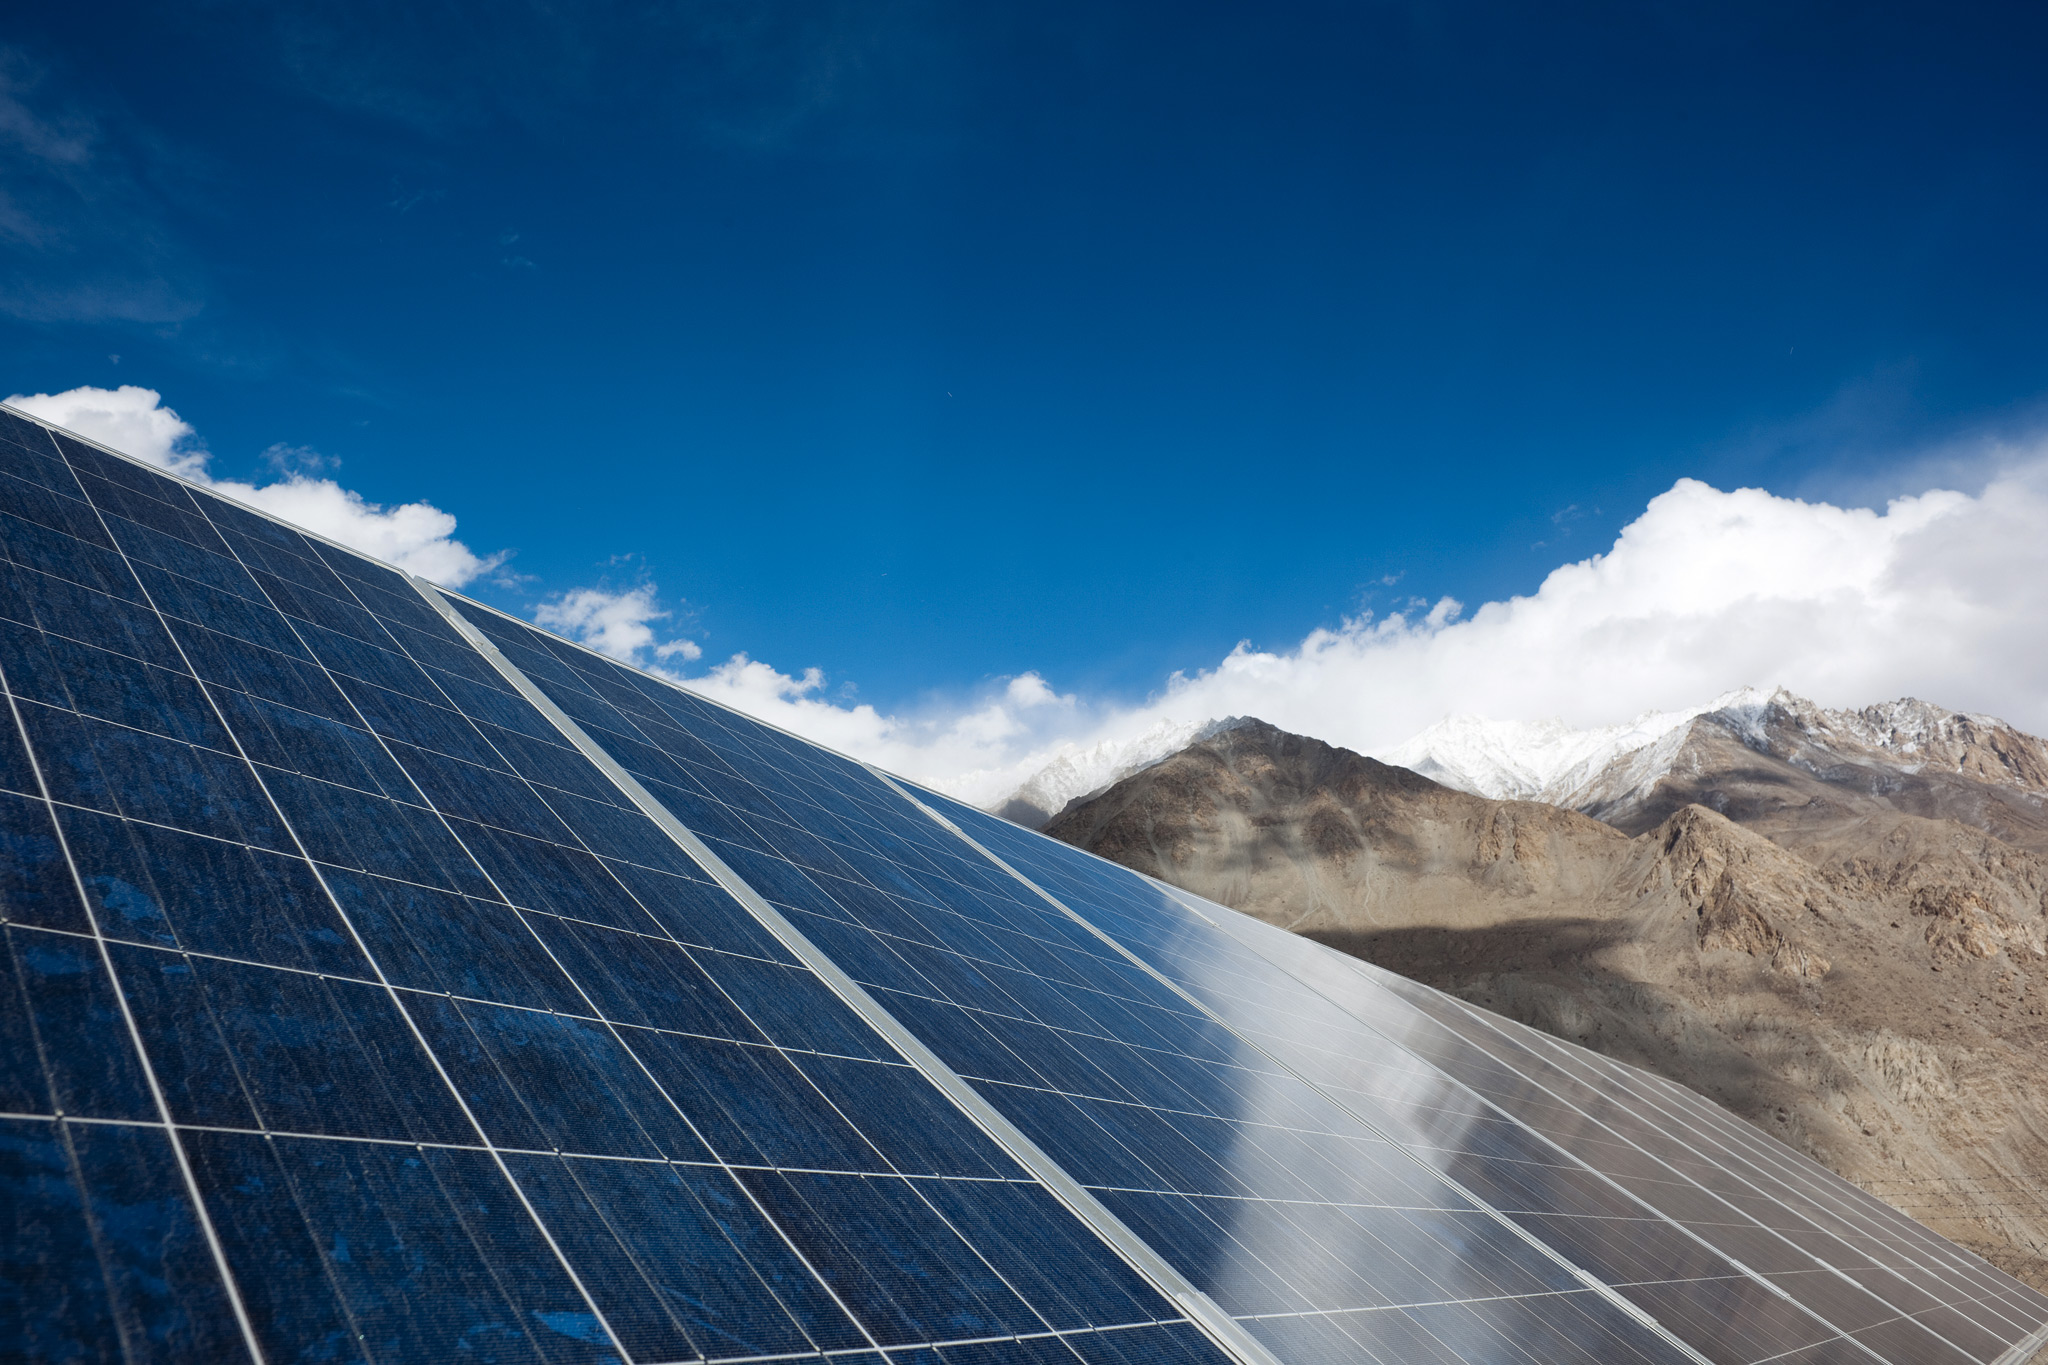 seeing the light  solar panels in shayok the sky and mountains glint off the solar panels which have transformed life in shayok like most remote ladakhi communities shayok